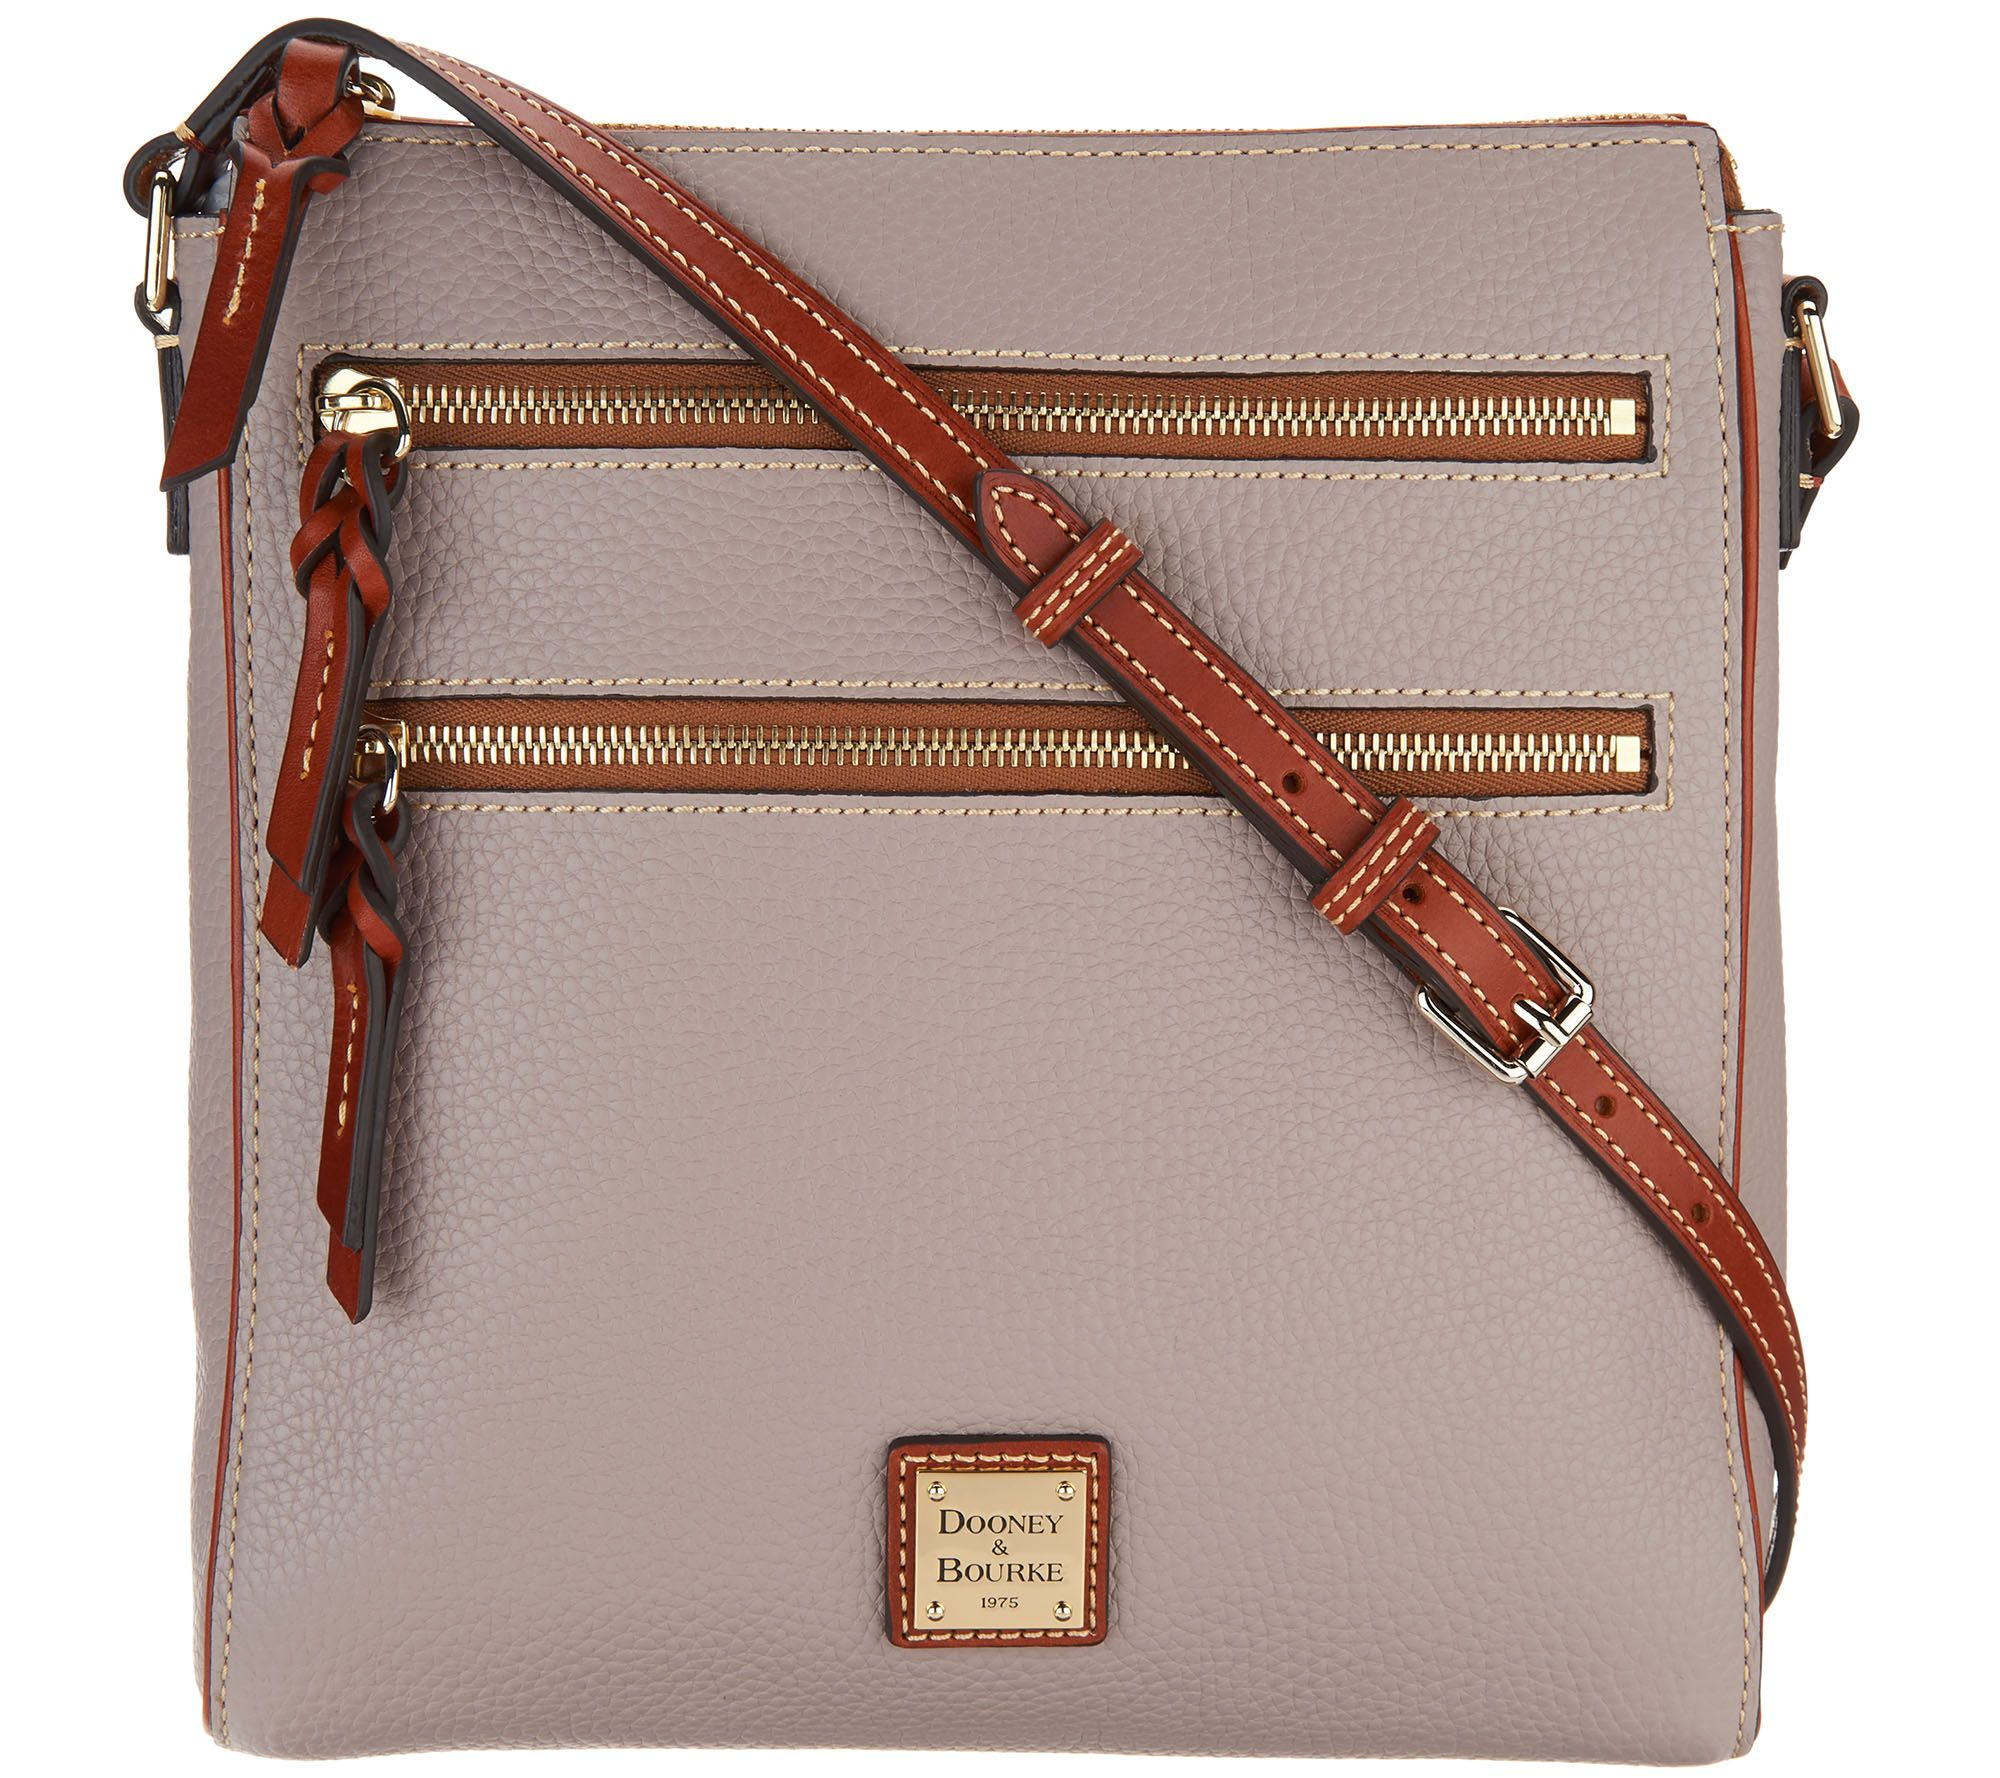 Dooney   Bourke Pebble Leather Triple Zip Crossbody Handbag - Page 1 —  QVC.com 143c87df492b1